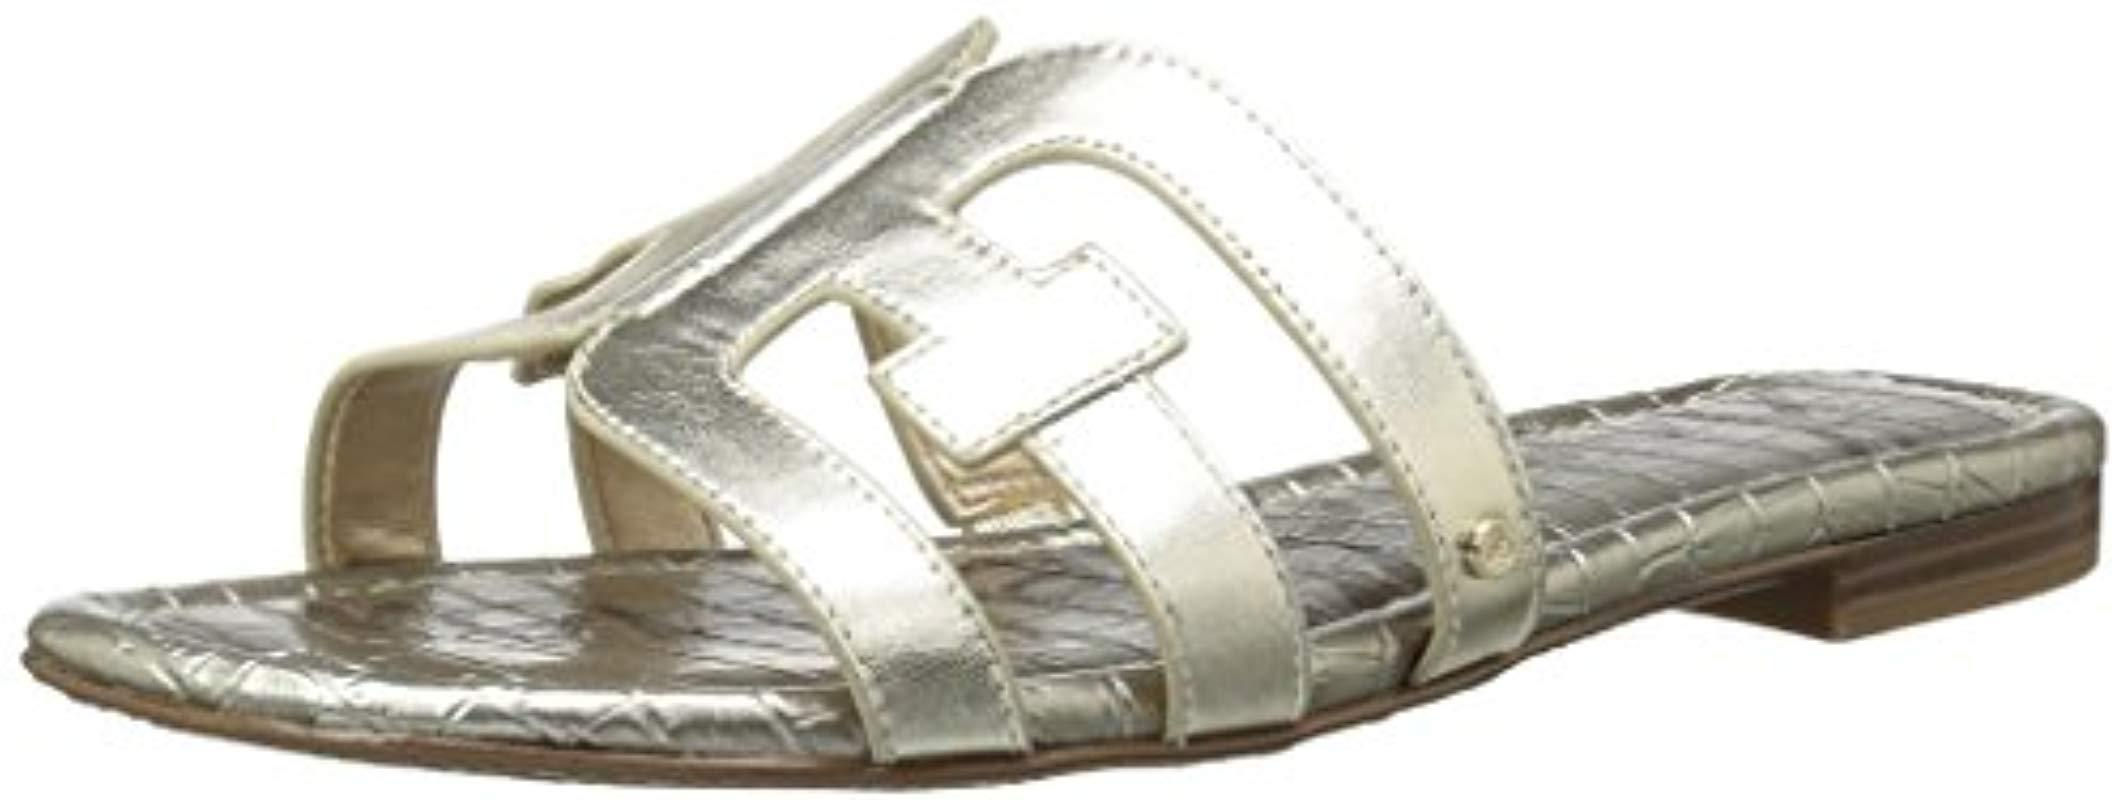 84894dfcf77 Lyst - Sam Edelman Bay Slide Sandal - Save 38%